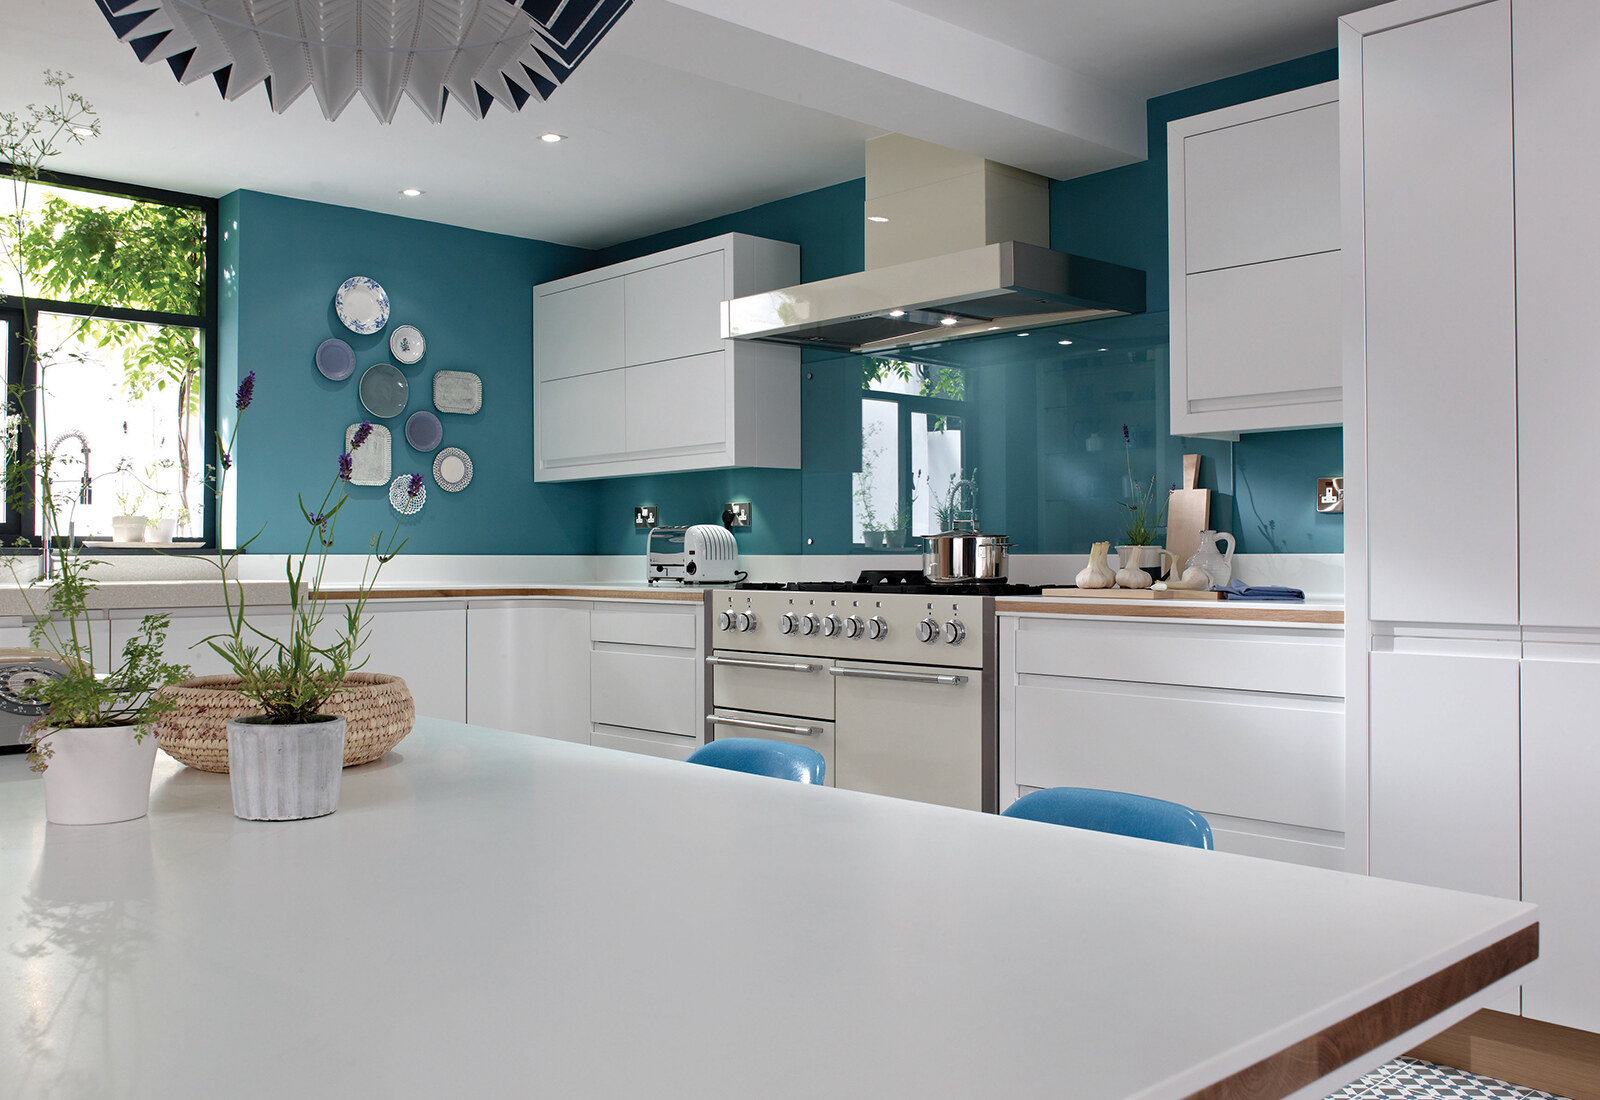 About our kitchen company | Dibben Kitchens